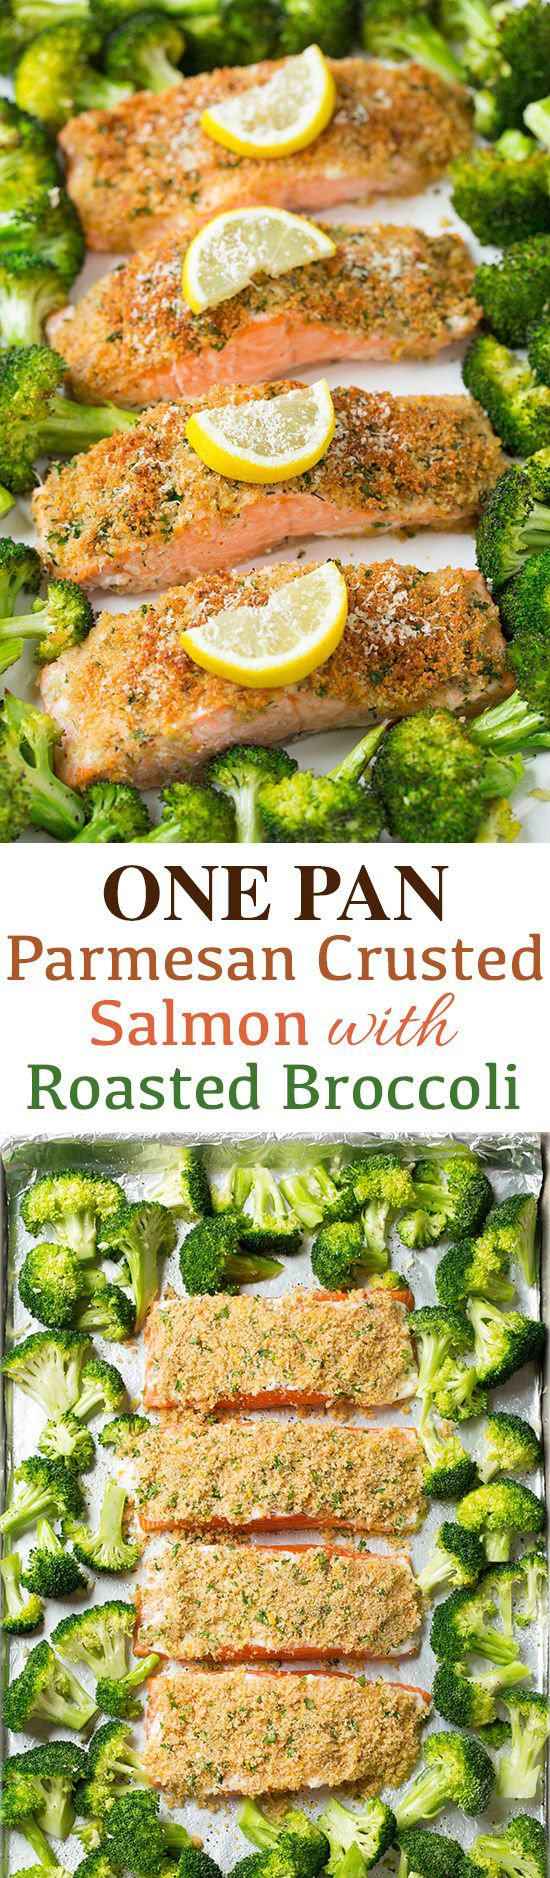 One Pan Parmesan Crusted Salmon with Roasted Broccoli